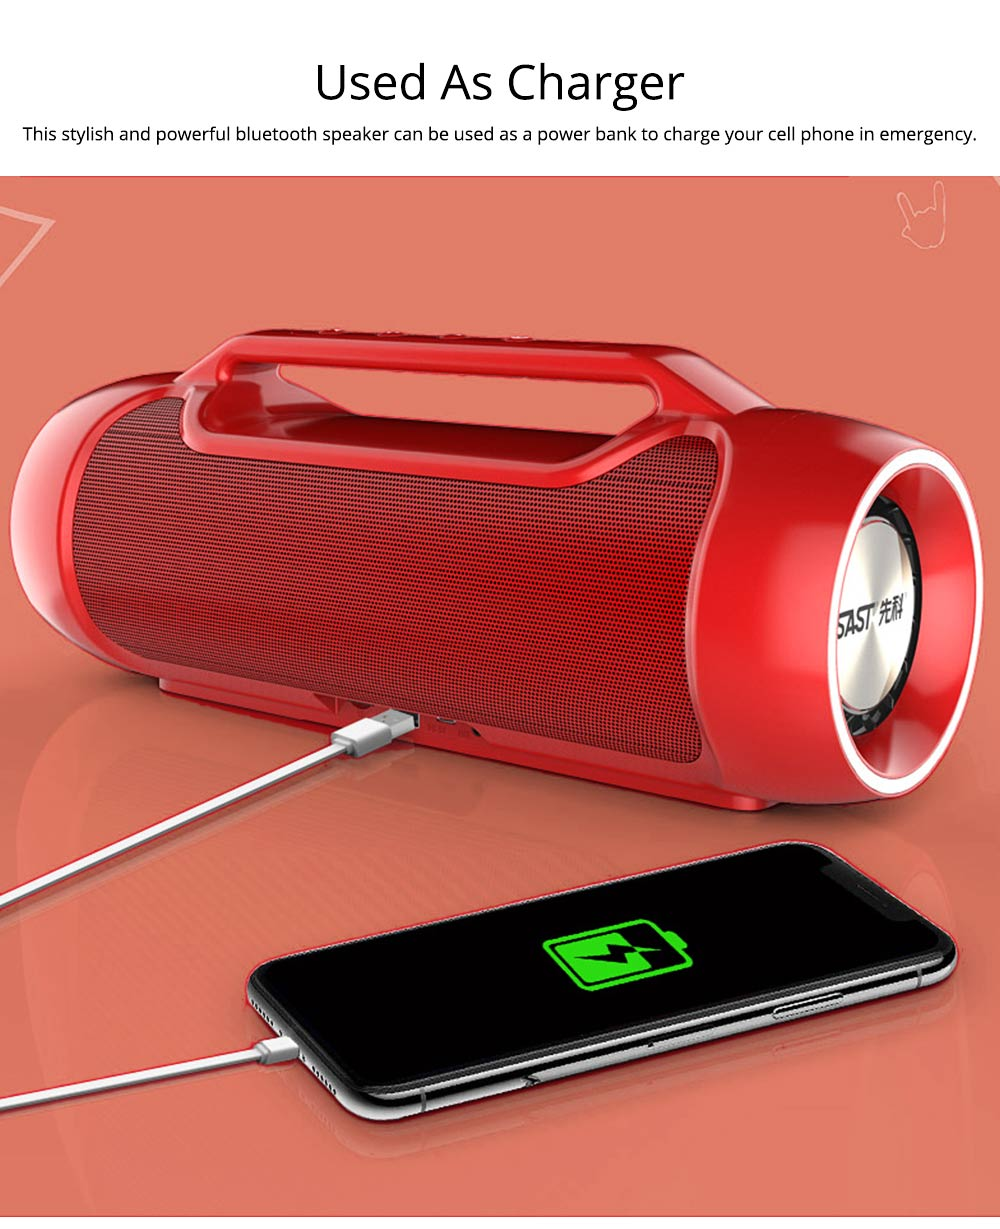 Bluetooth Speaker for Rapper, Dancer, Singer, Portable Brass with High Quality Sound Speaker, Double Horn Large Battery Speaker 5